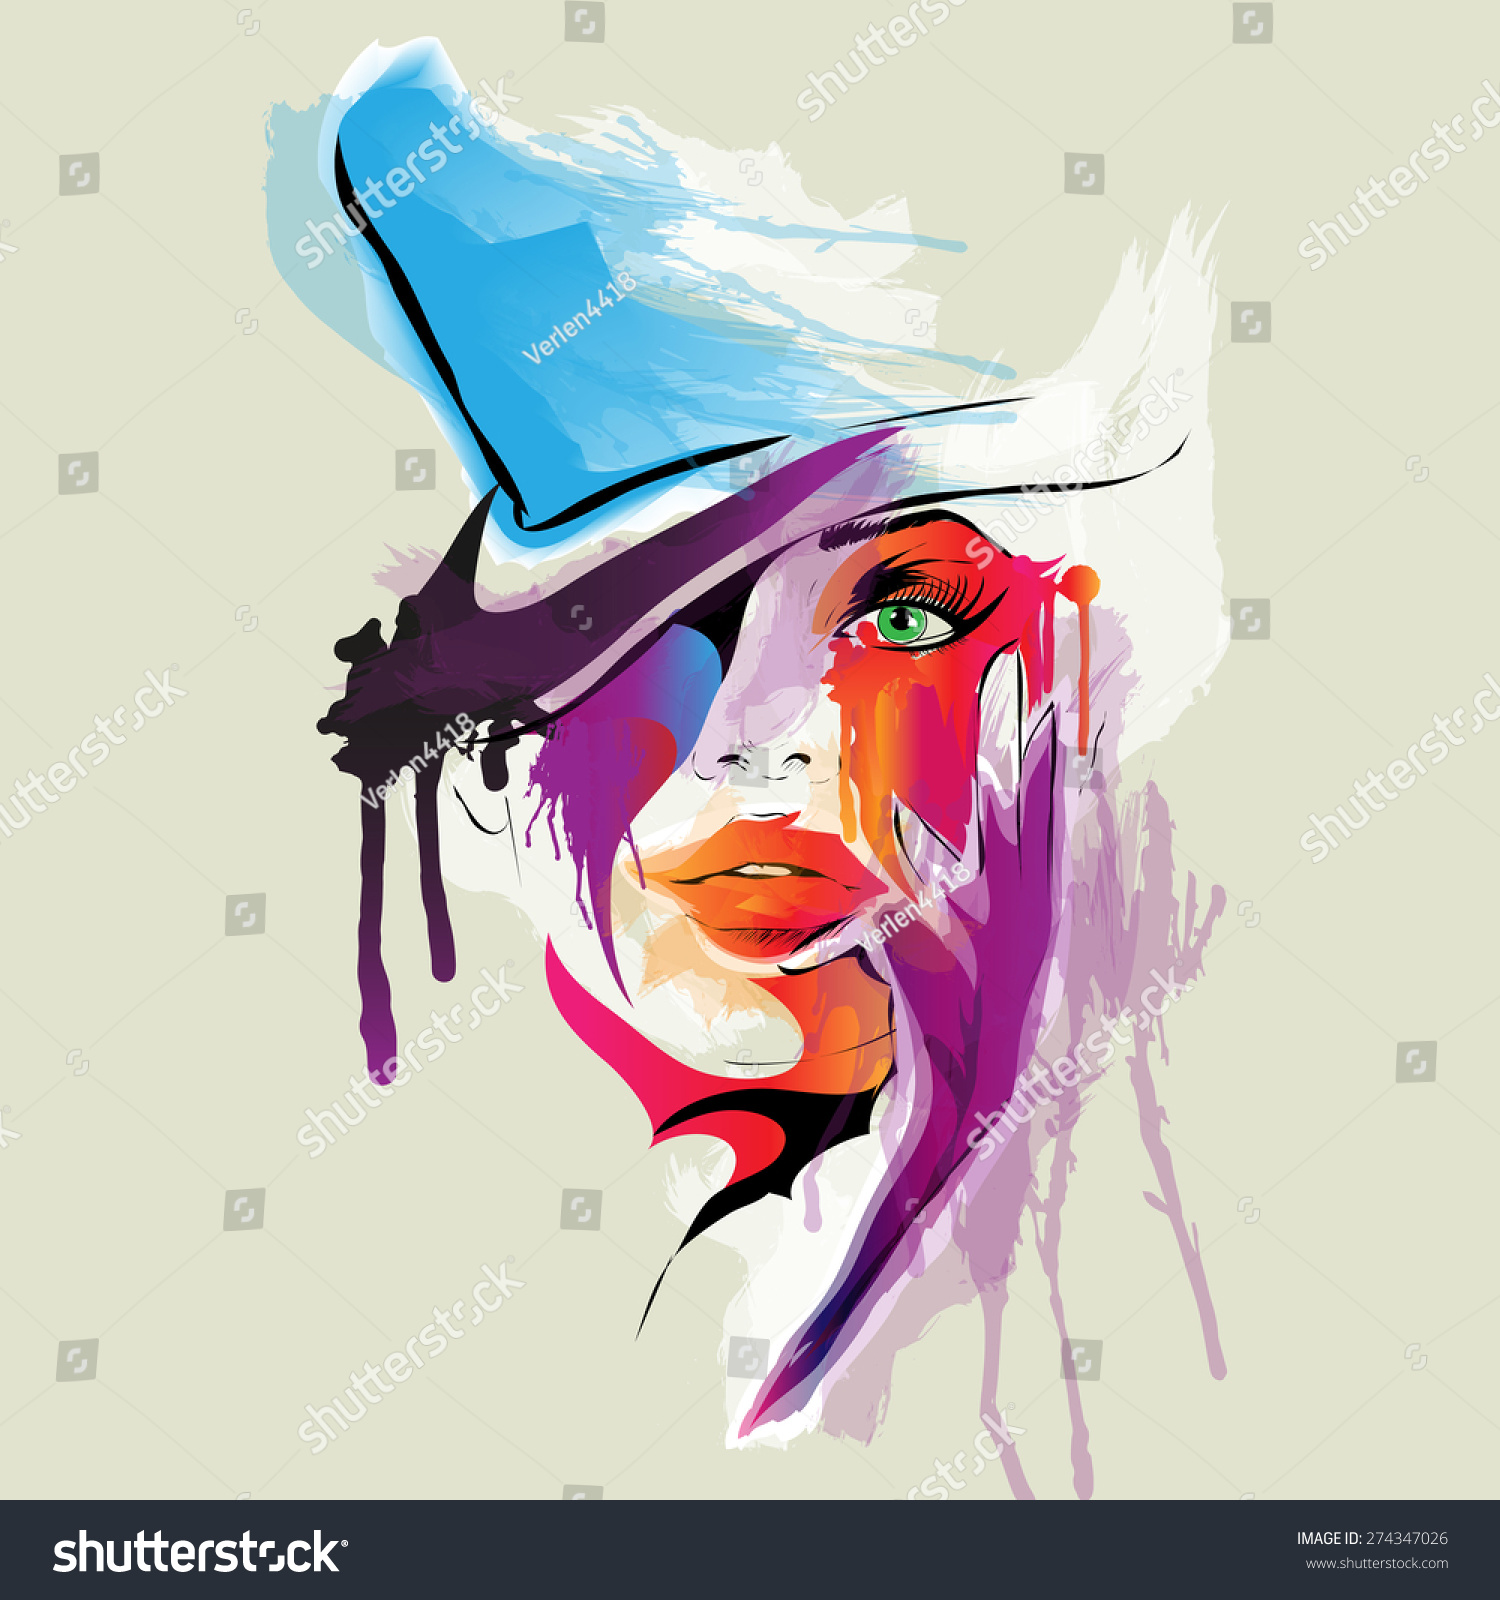 Abstract Woman Face Vector Illustration Stock Vector 274347026 ...